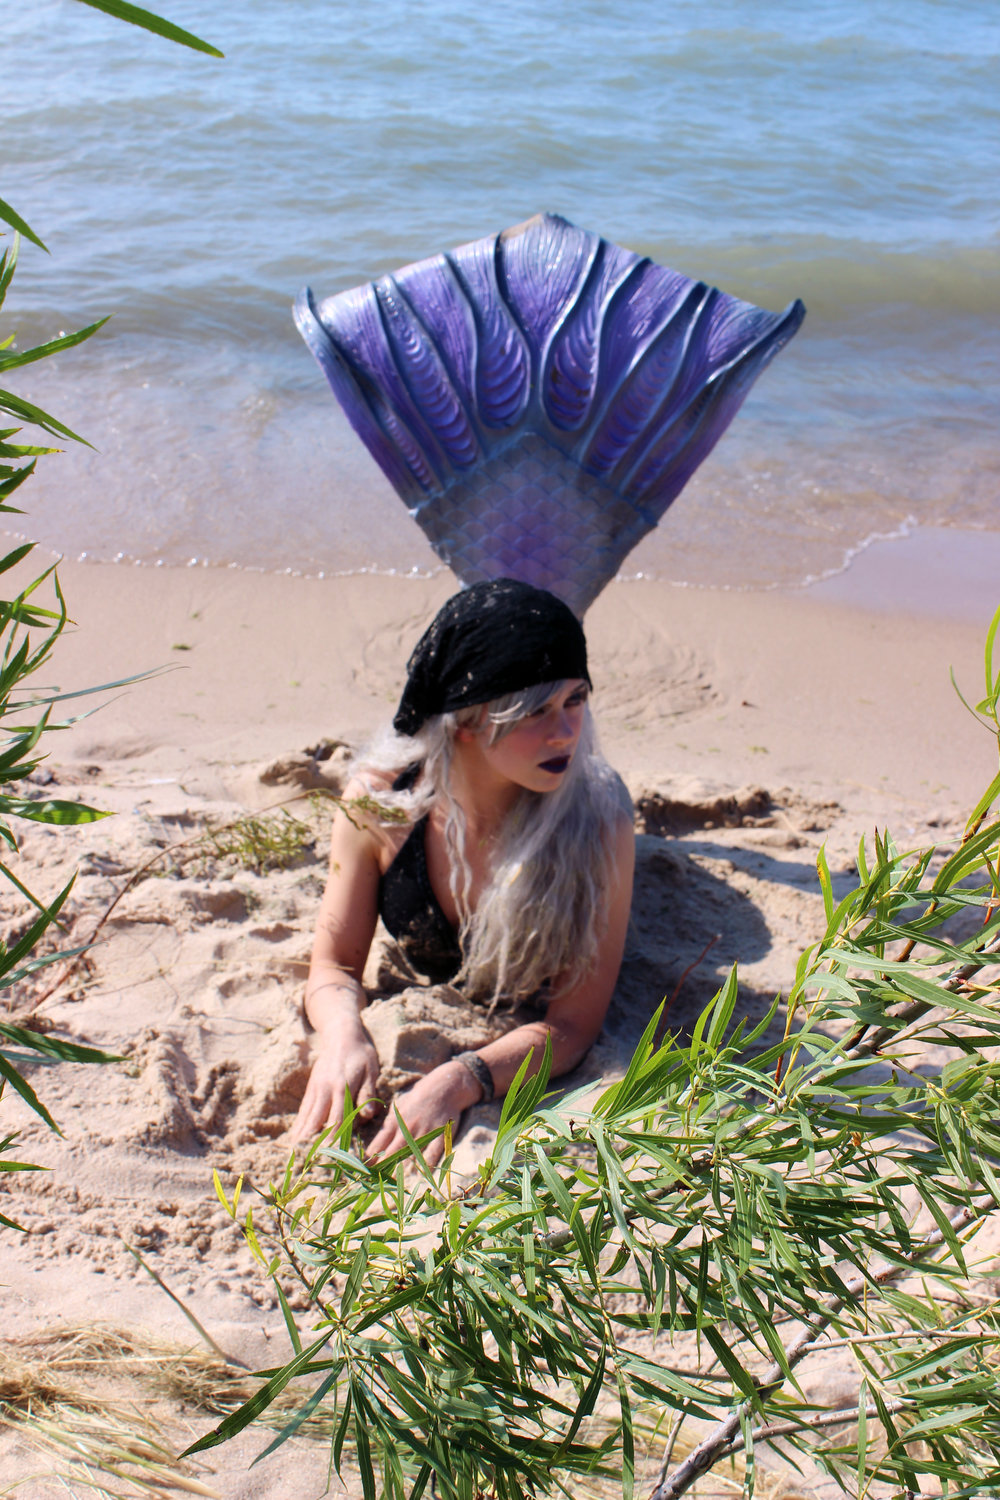 Mermaid-Phantom-at-Goodharborbeach-looking-away-greenery.jpg